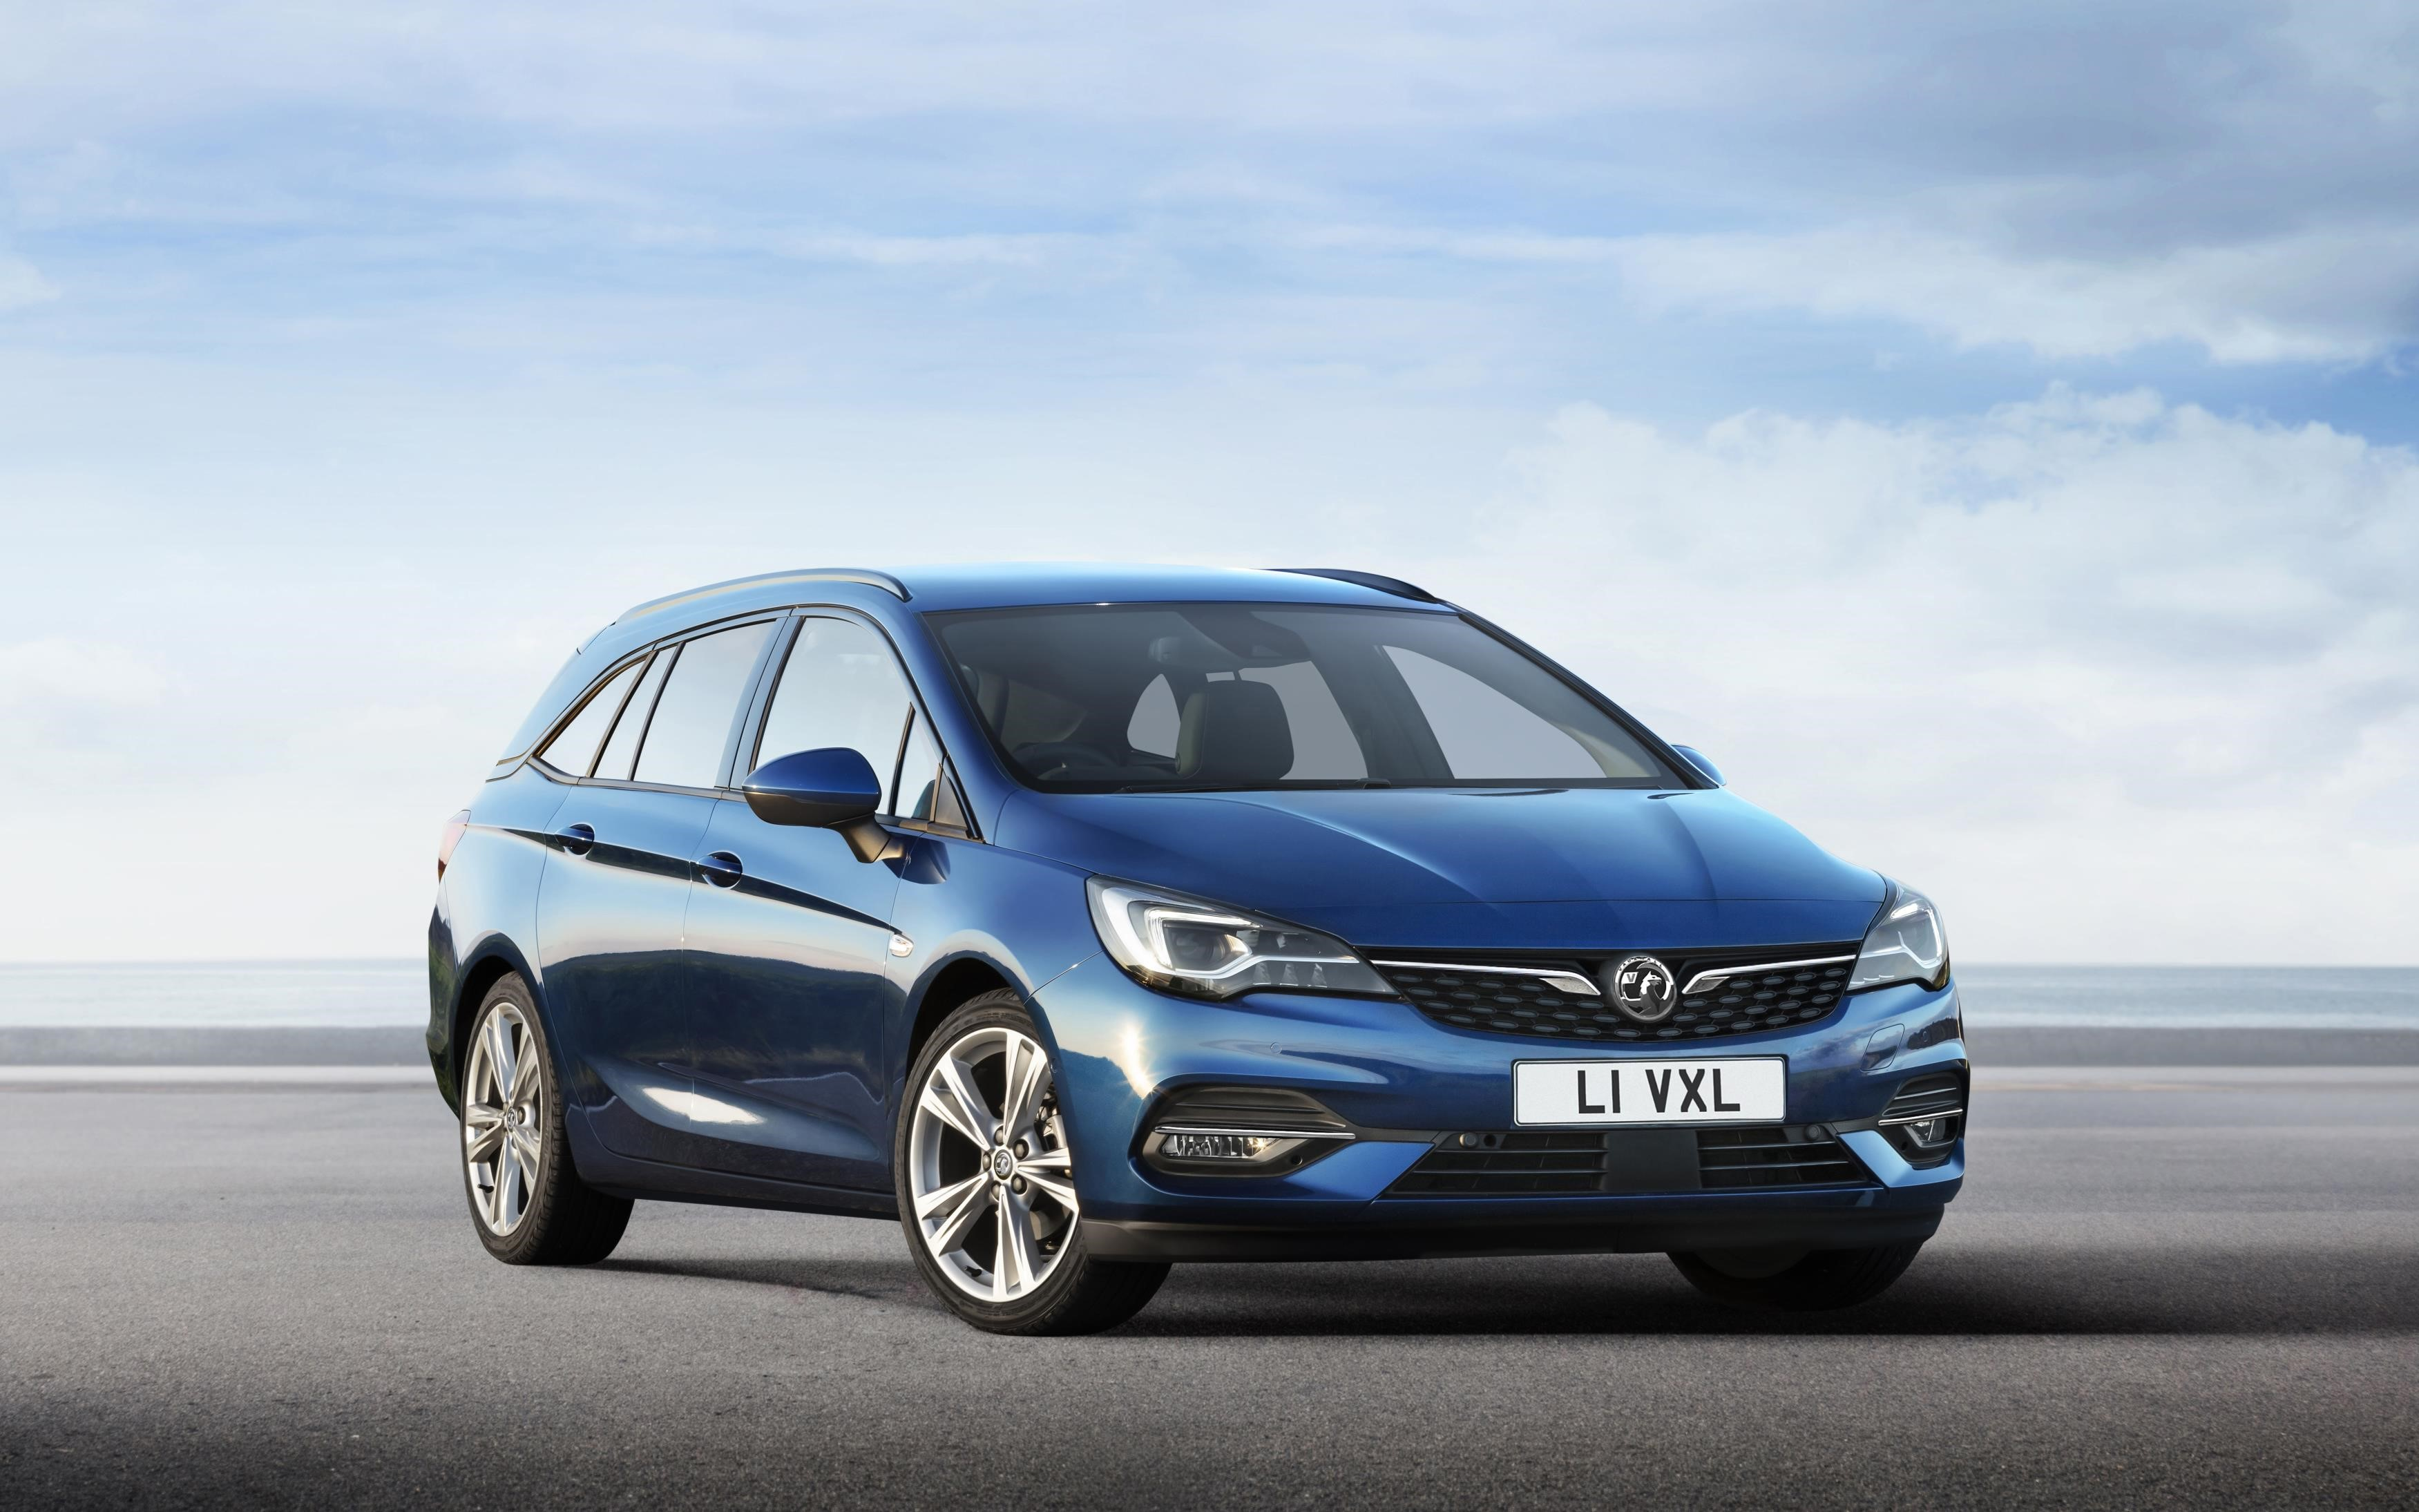 new vauxhall astra offers 19 lower co2 and fuel consumption manufacturer news